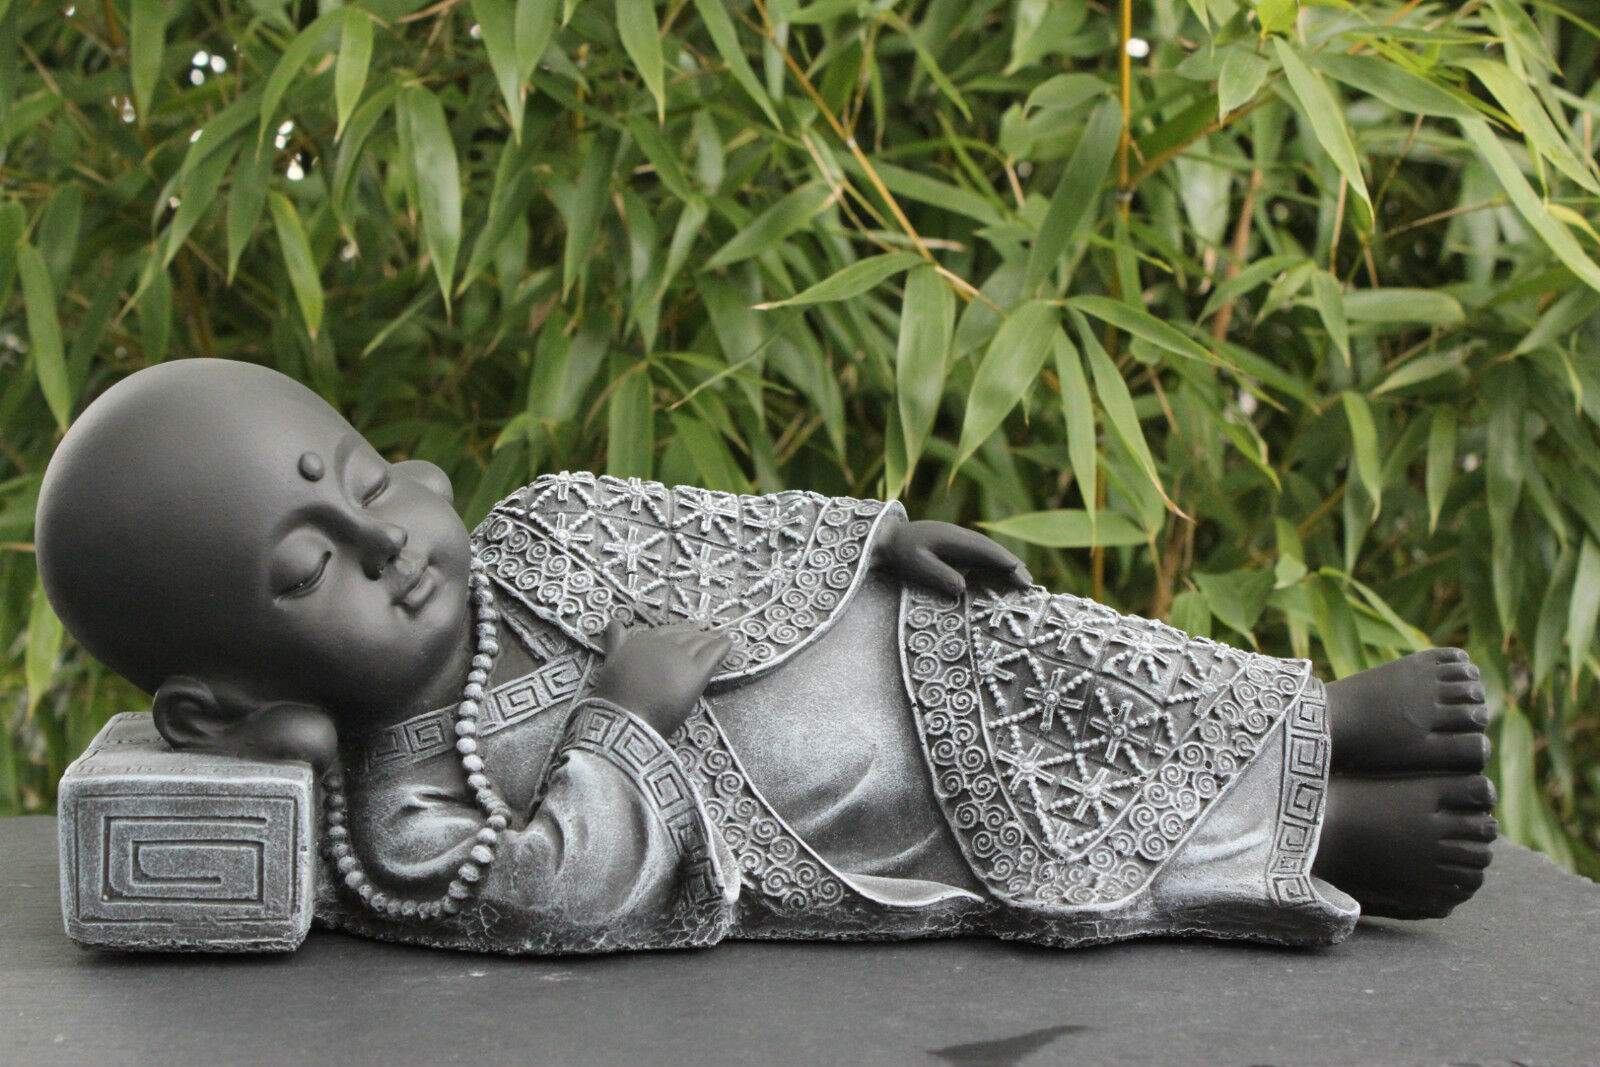 buddha liegend figur deko garten stein figur statue skulptur garten figur chf picclick ch. Black Bedroom Furniture Sets. Home Design Ideas